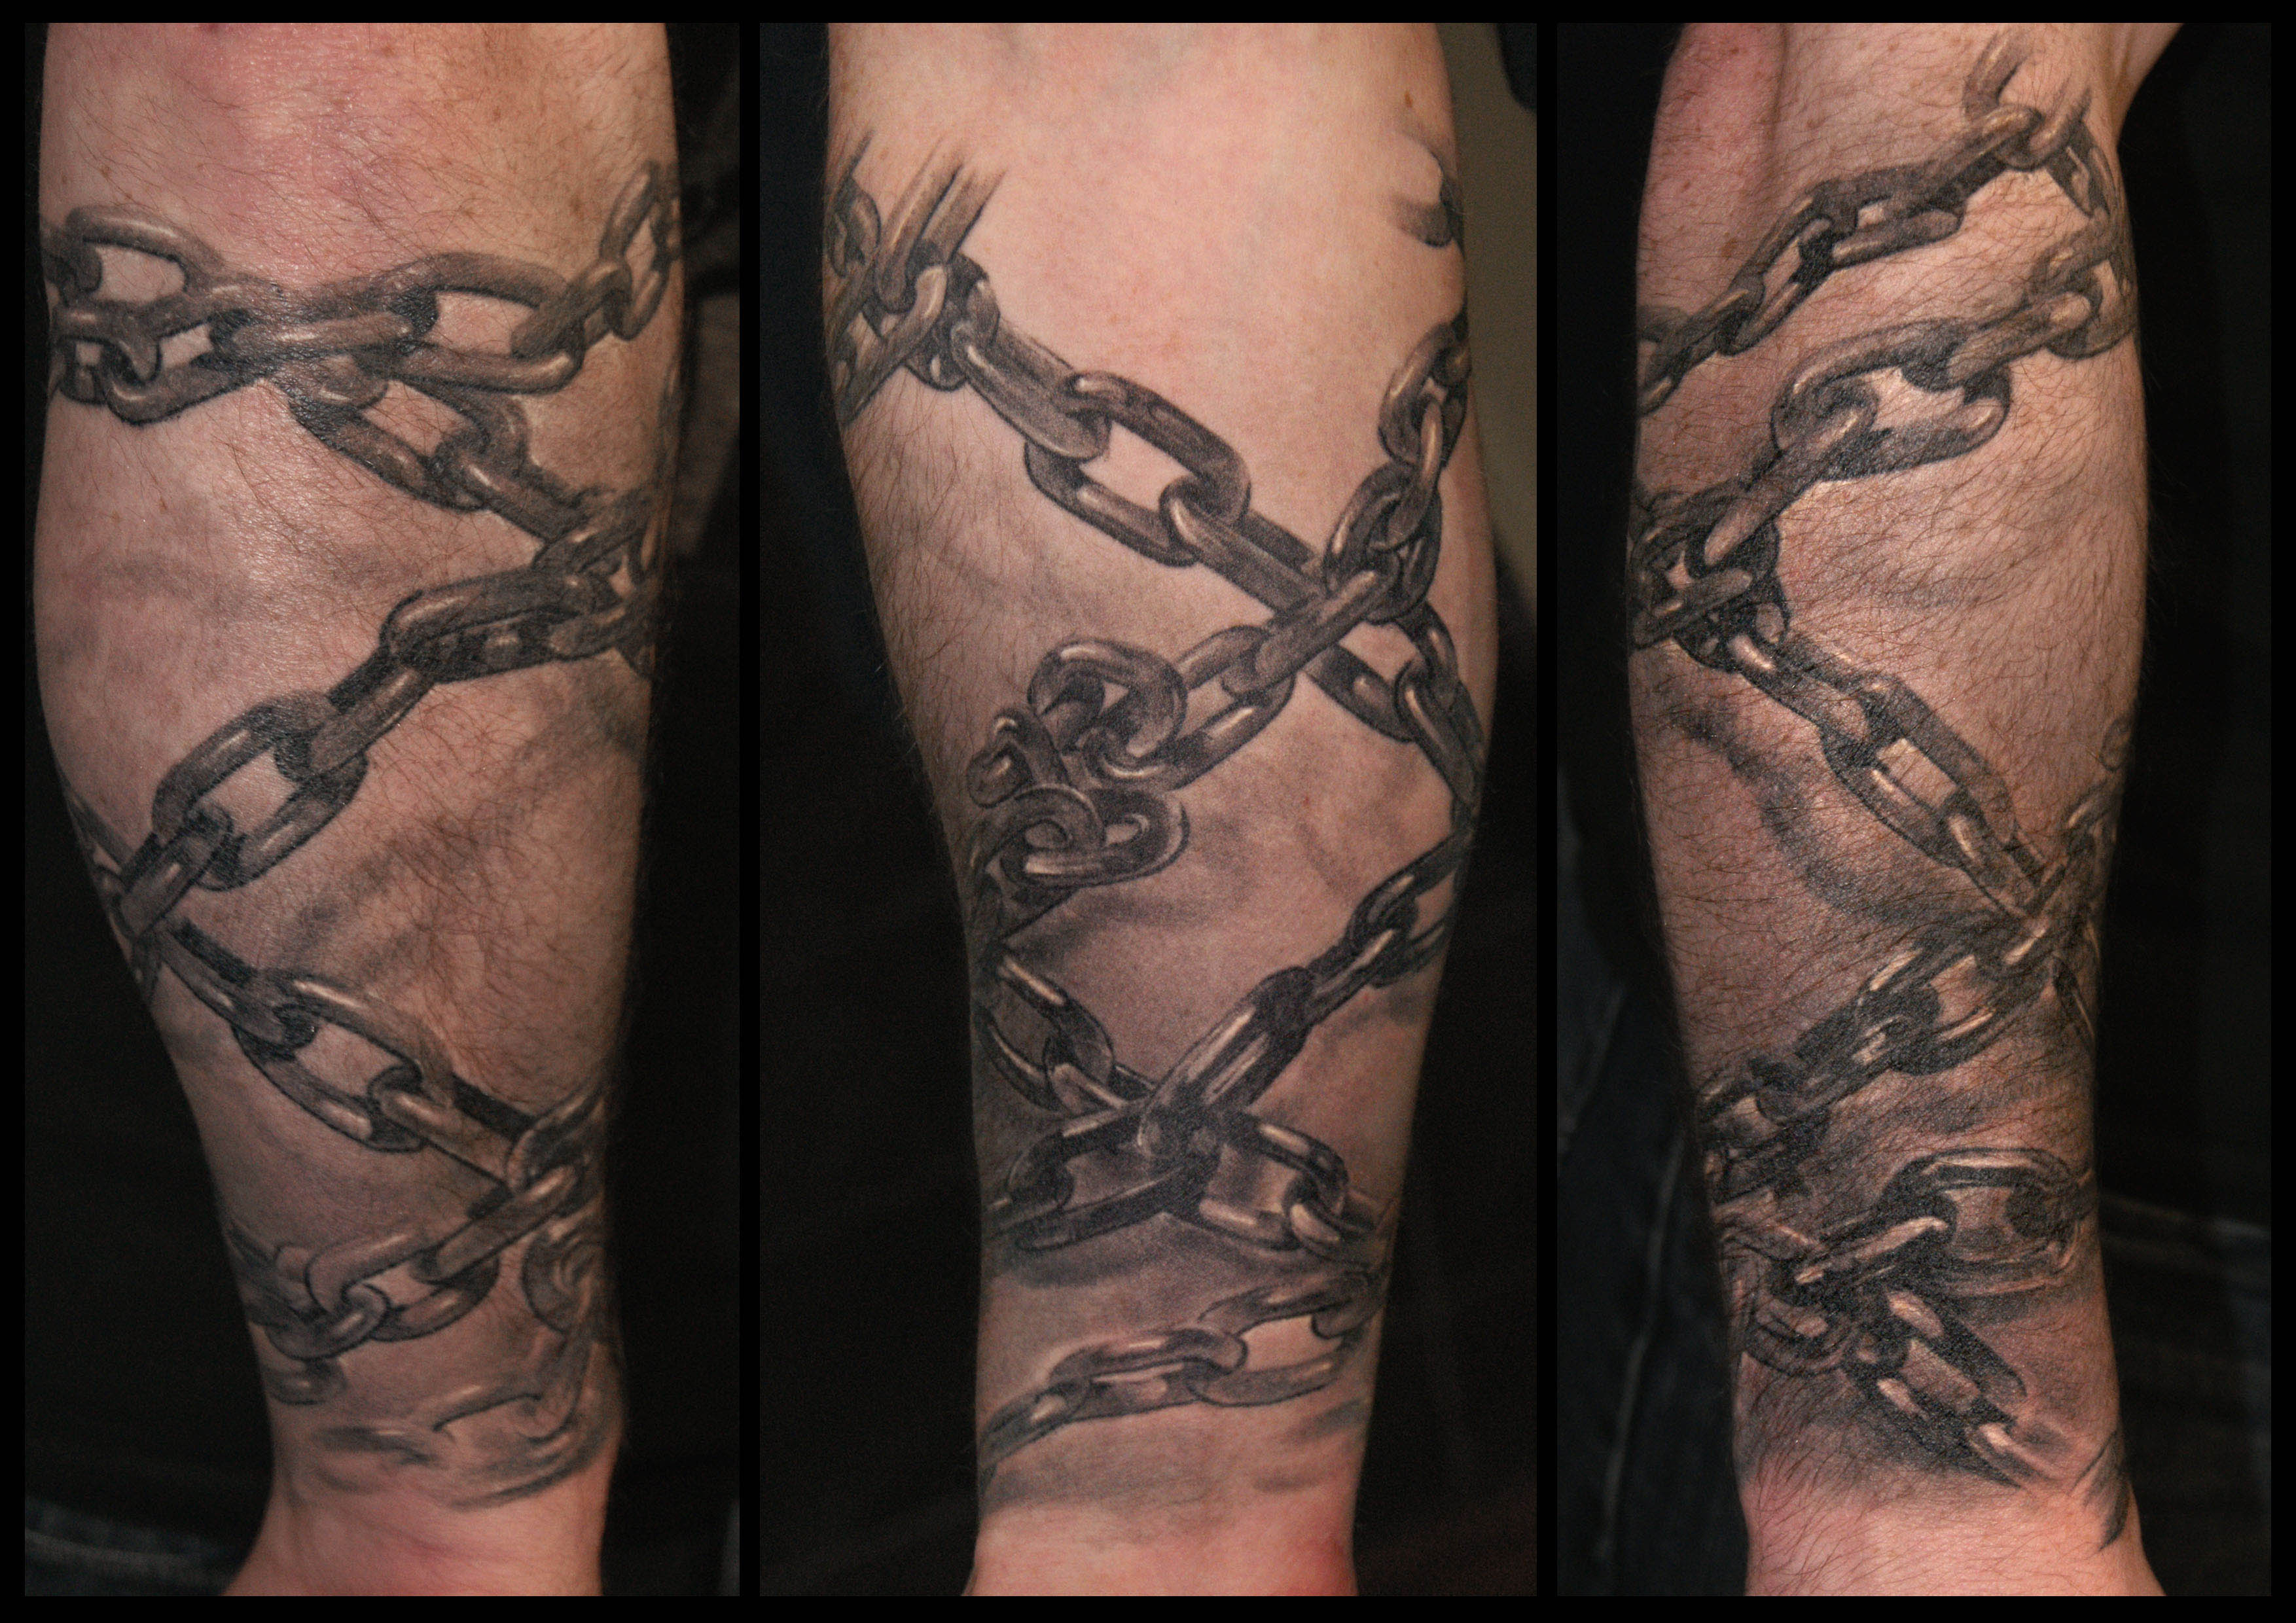 Chain Tattoo Images Designs in size 3508 X 2480